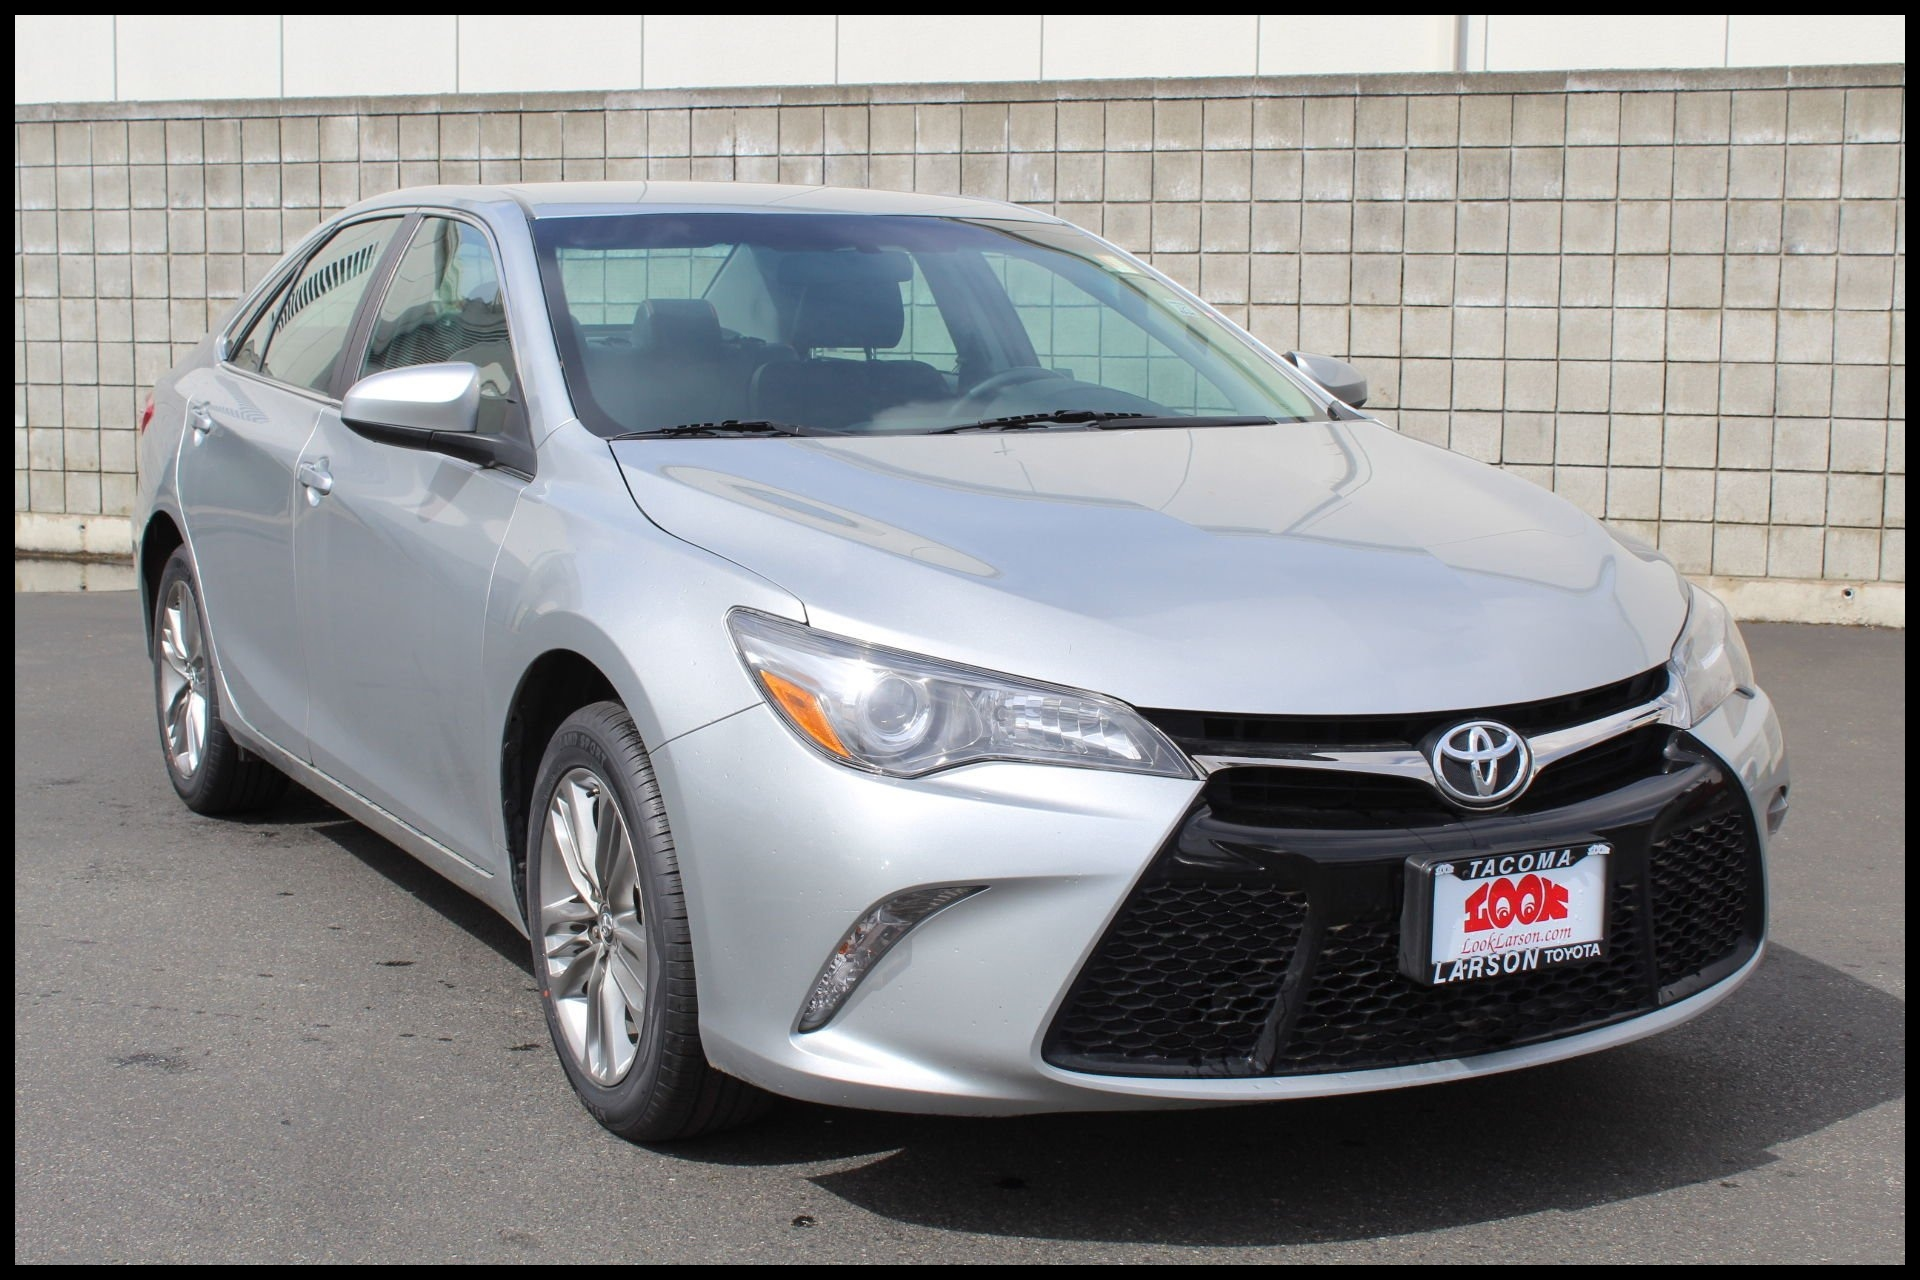 New Certified or Used Vehicles for Sale In Ta A Wa Concept Certified or Used Vehicles for Sale in Ta a WA from Toyota Camry Mile Service